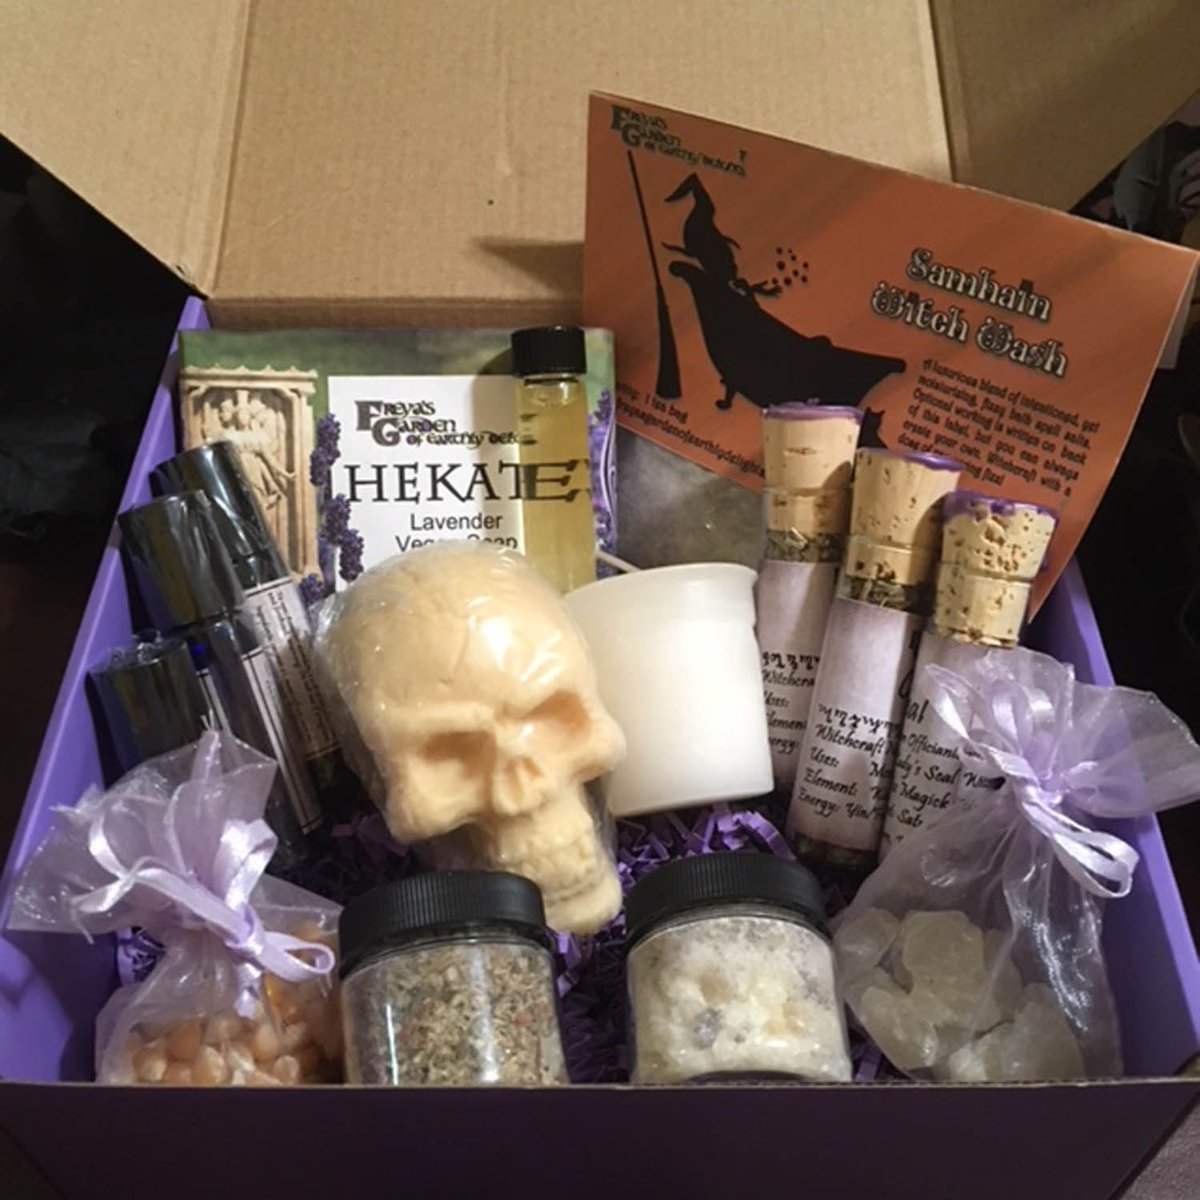 Shop my Samhain Sale!  20% when you spend $35, PLUS FREE SHIPPING on all orders! https://etsy.me/31dDZRK  #etsy #freyasearthlydelight #etsyfinds #etsygifts #etsysale #etsycoupon #shopsmall #Samhain #Pagan #WtichcraftSupply #WitchesSabbatKits